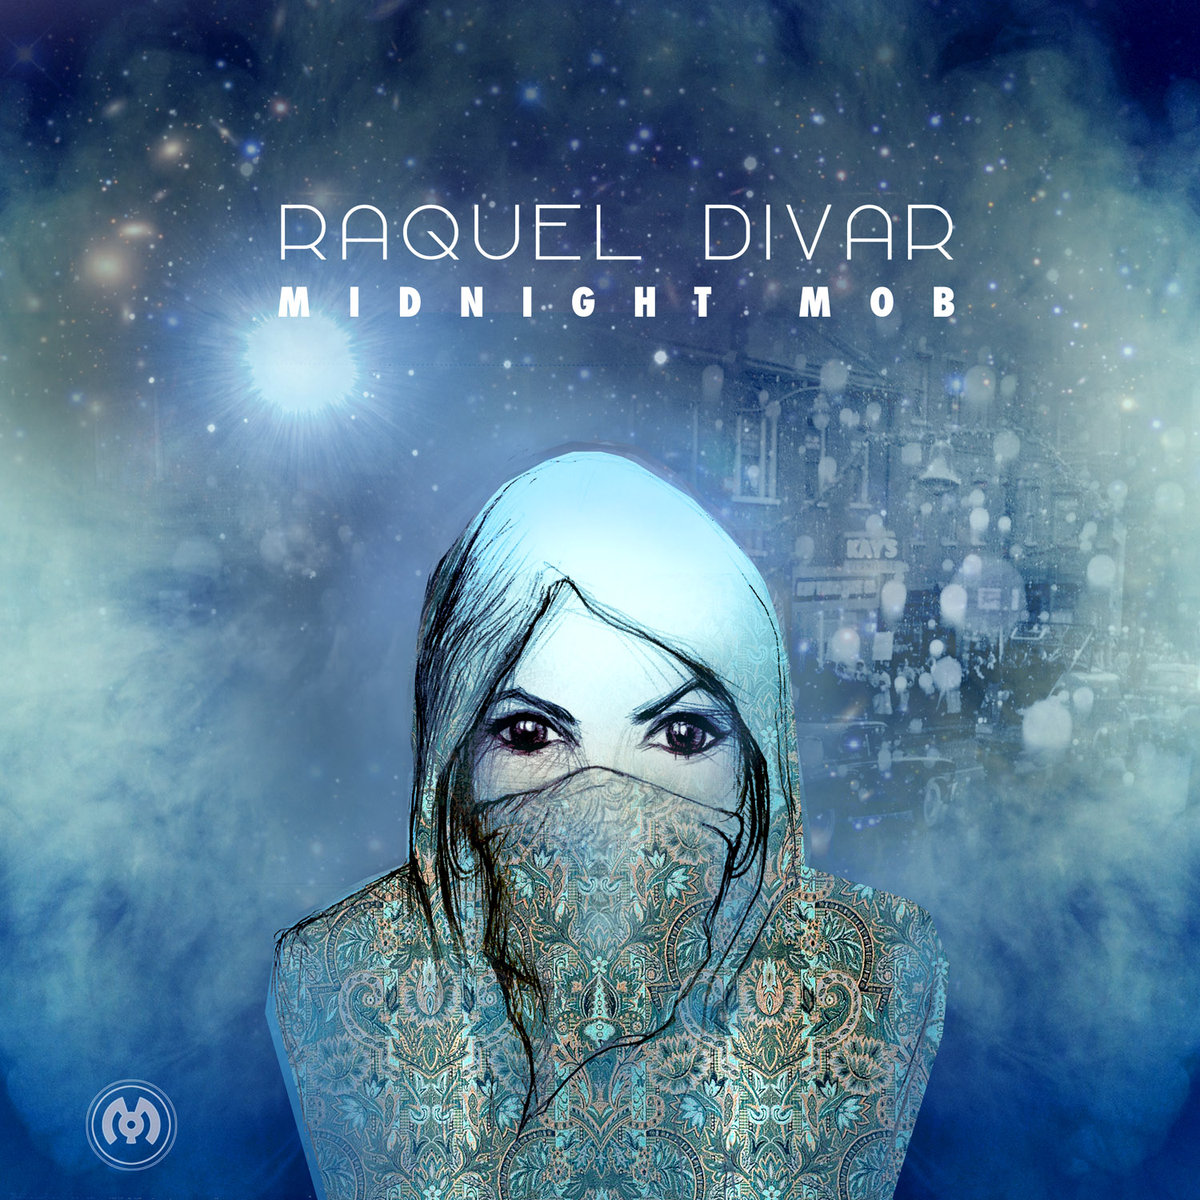 Raquel Divar & Cory O feat. Abstract Rude - She Look Like @ 'Midnight Mob' album (electronic, dubstep)